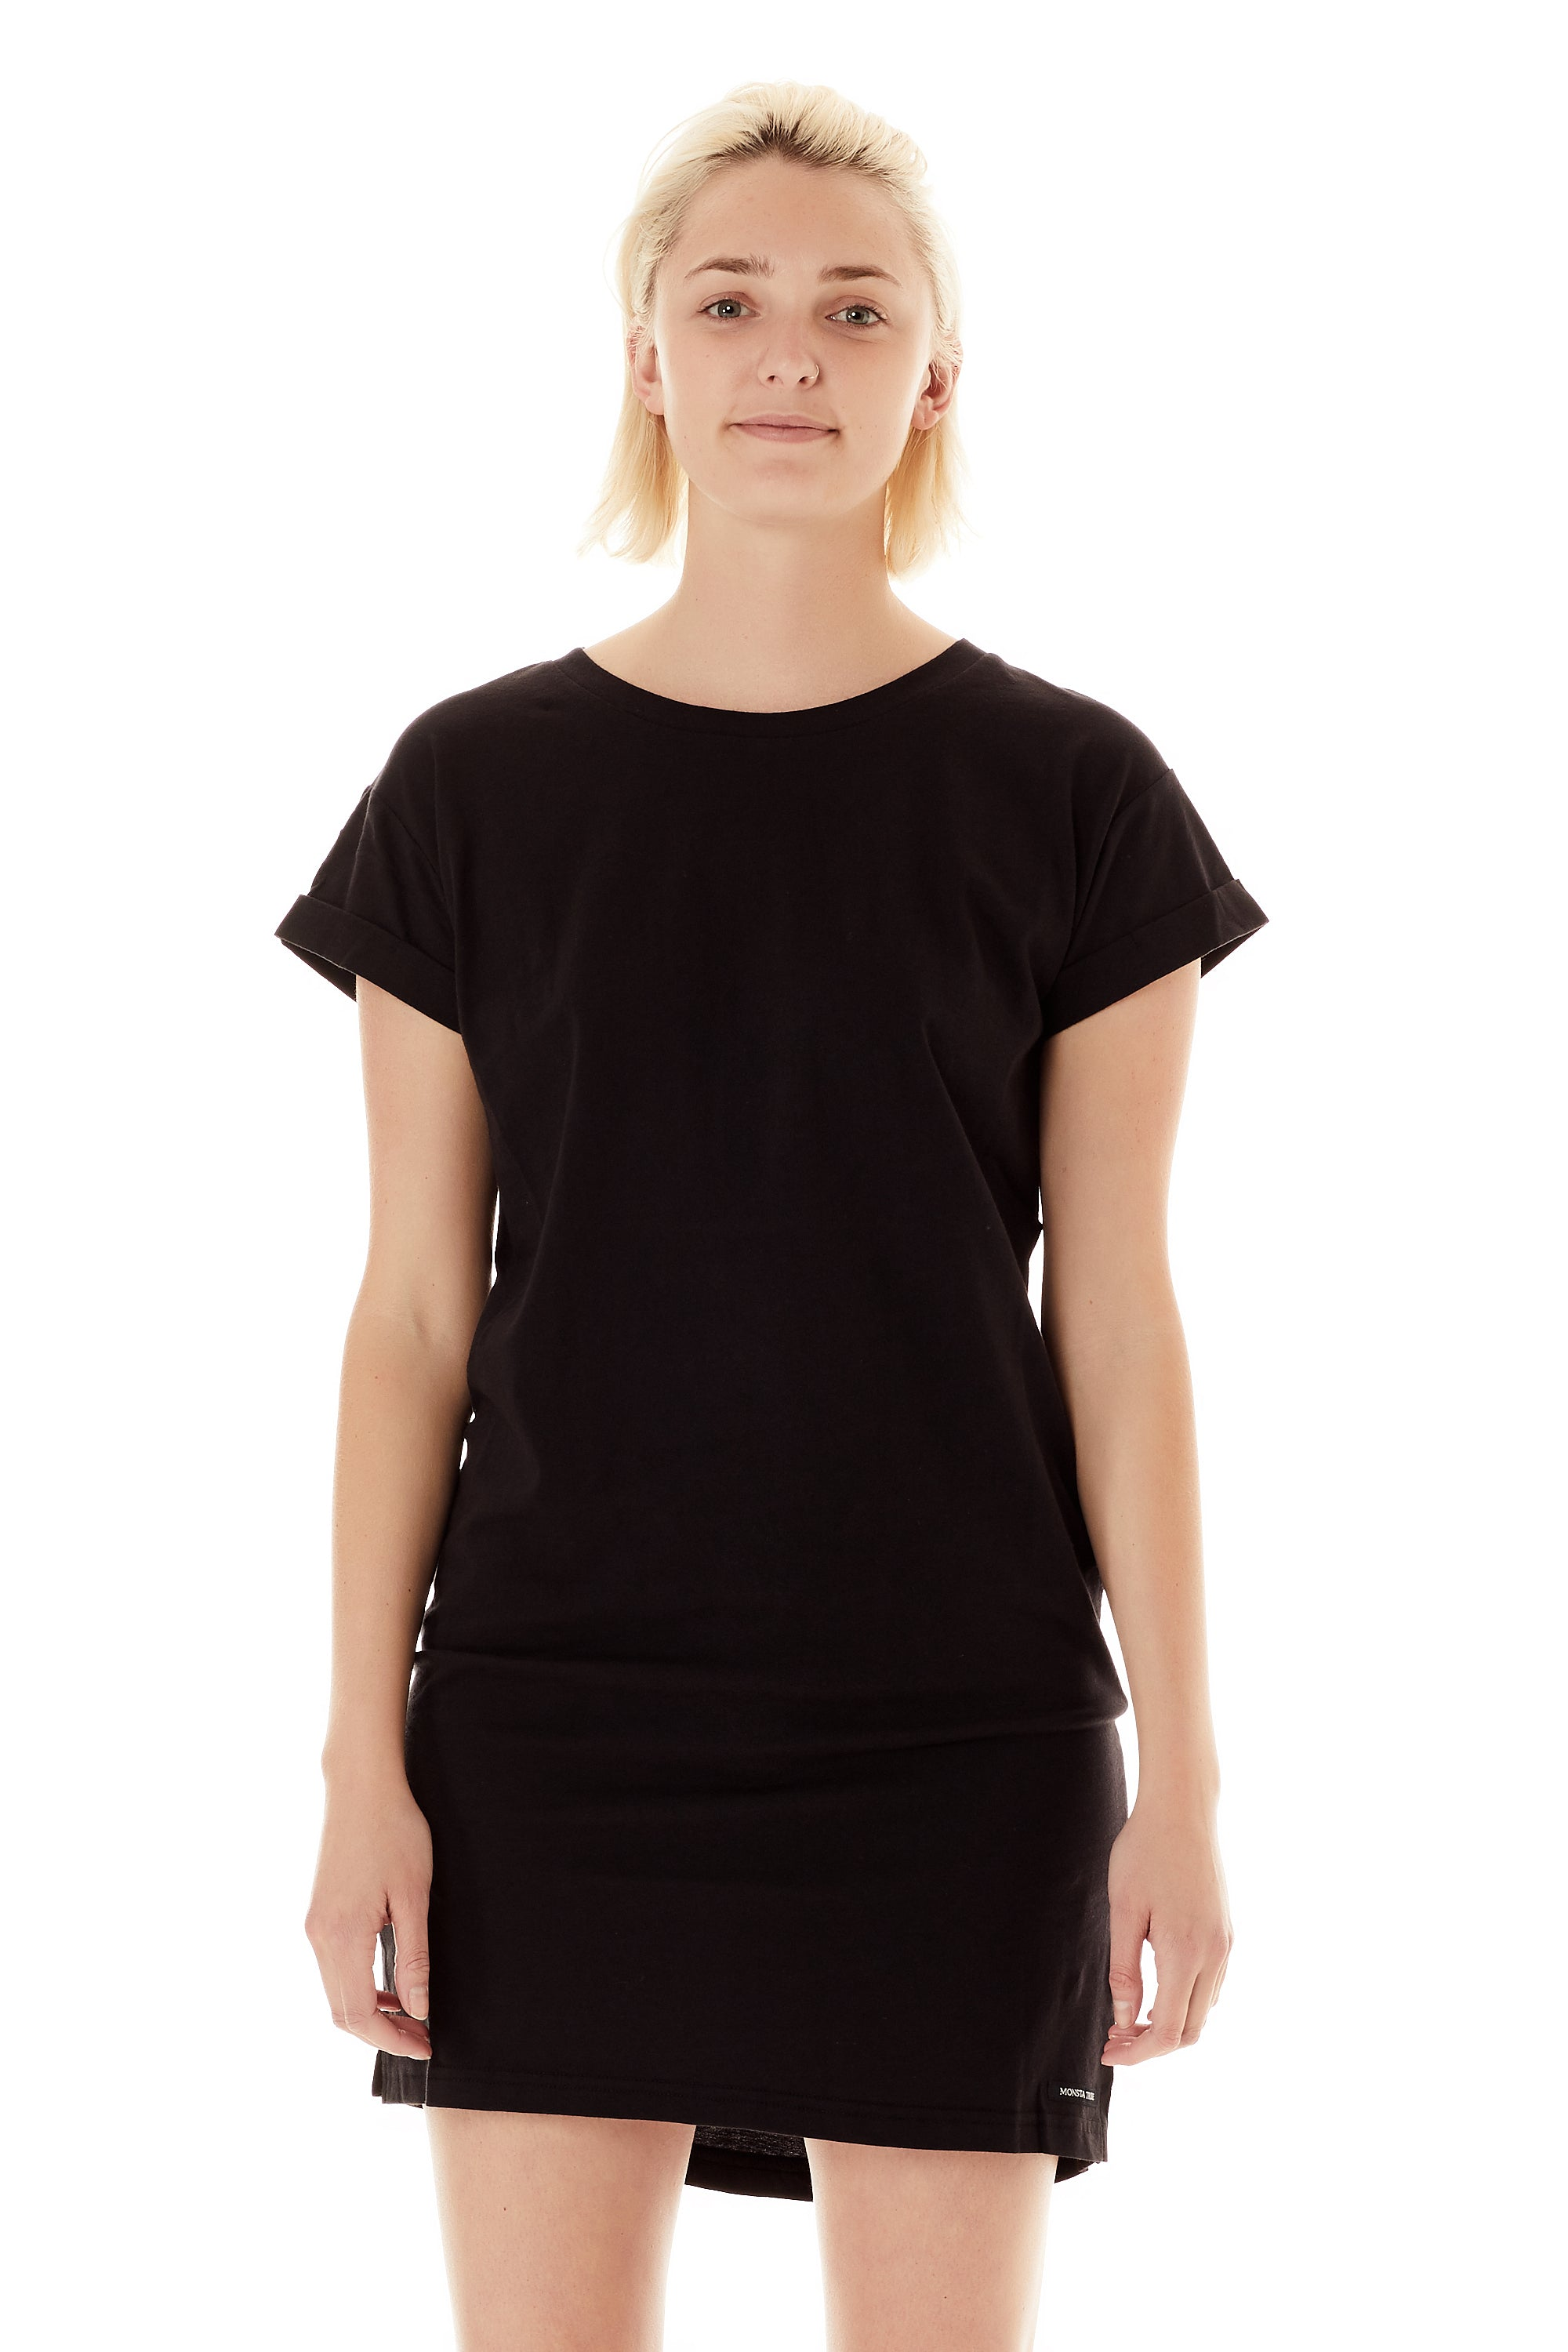 669edad3c Womens T-Shirt Dress Black - Monsta Surf